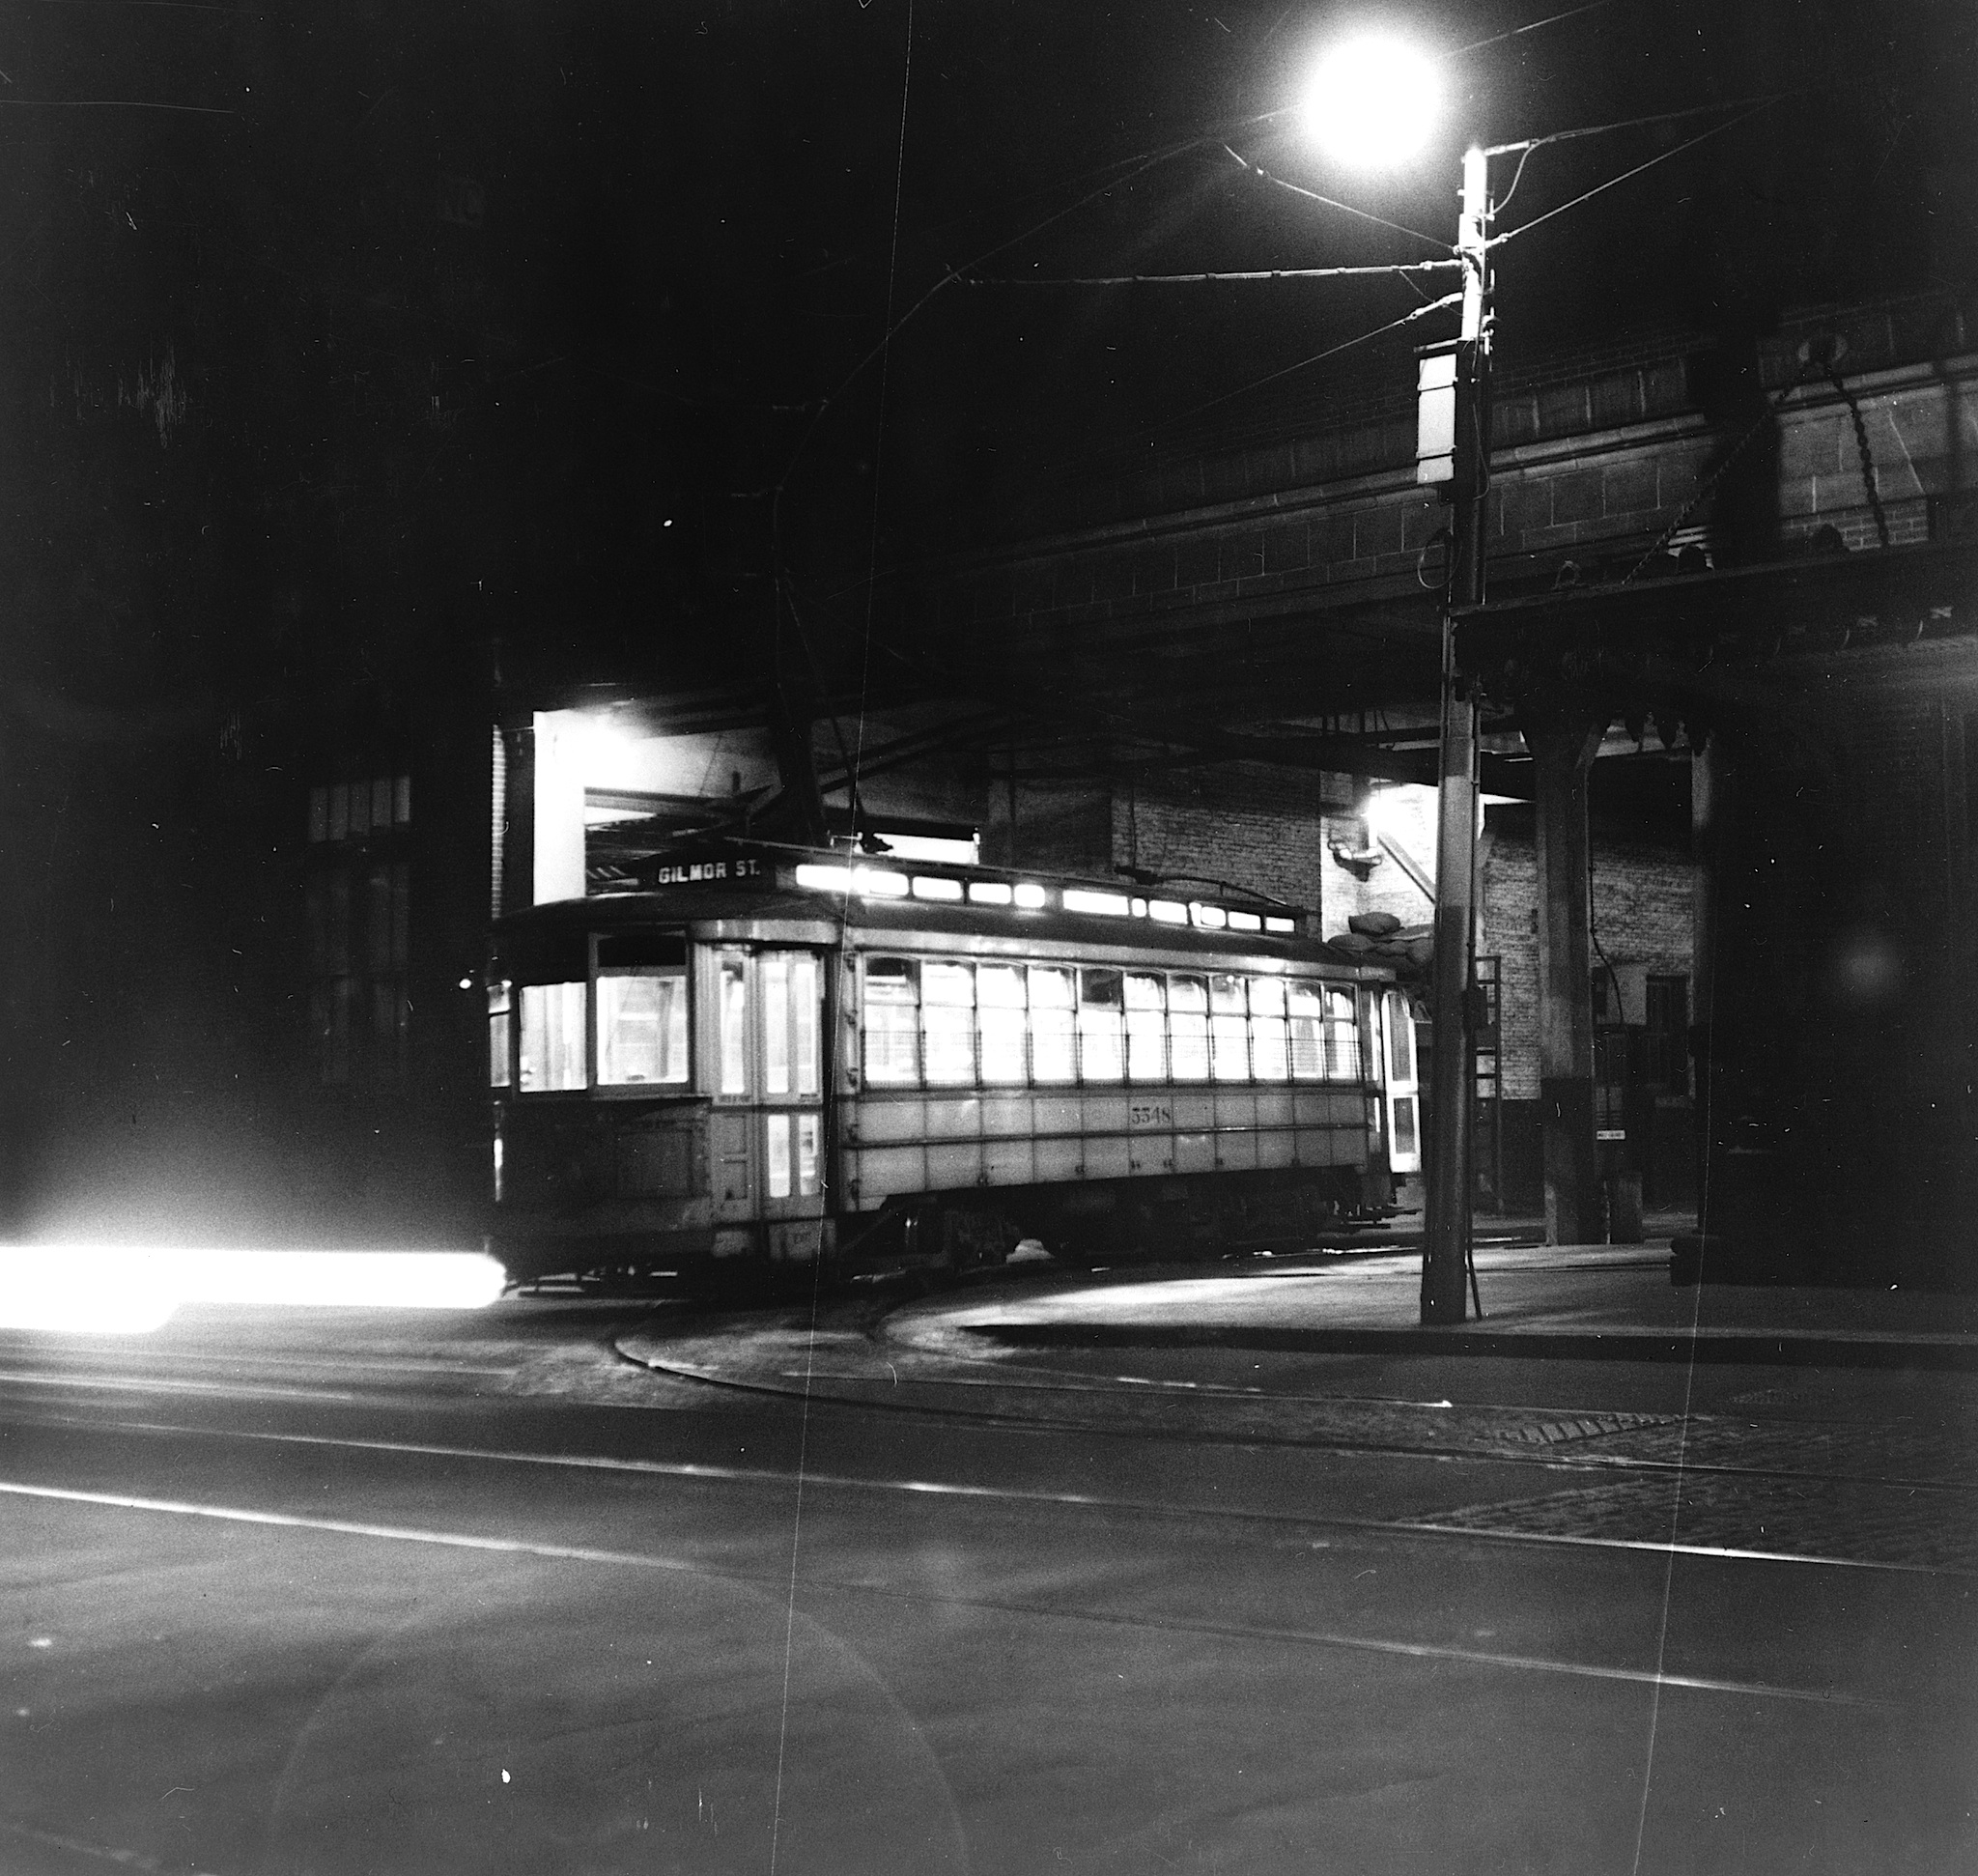 Cool Photo of Trolley Leaving Terminal at Night